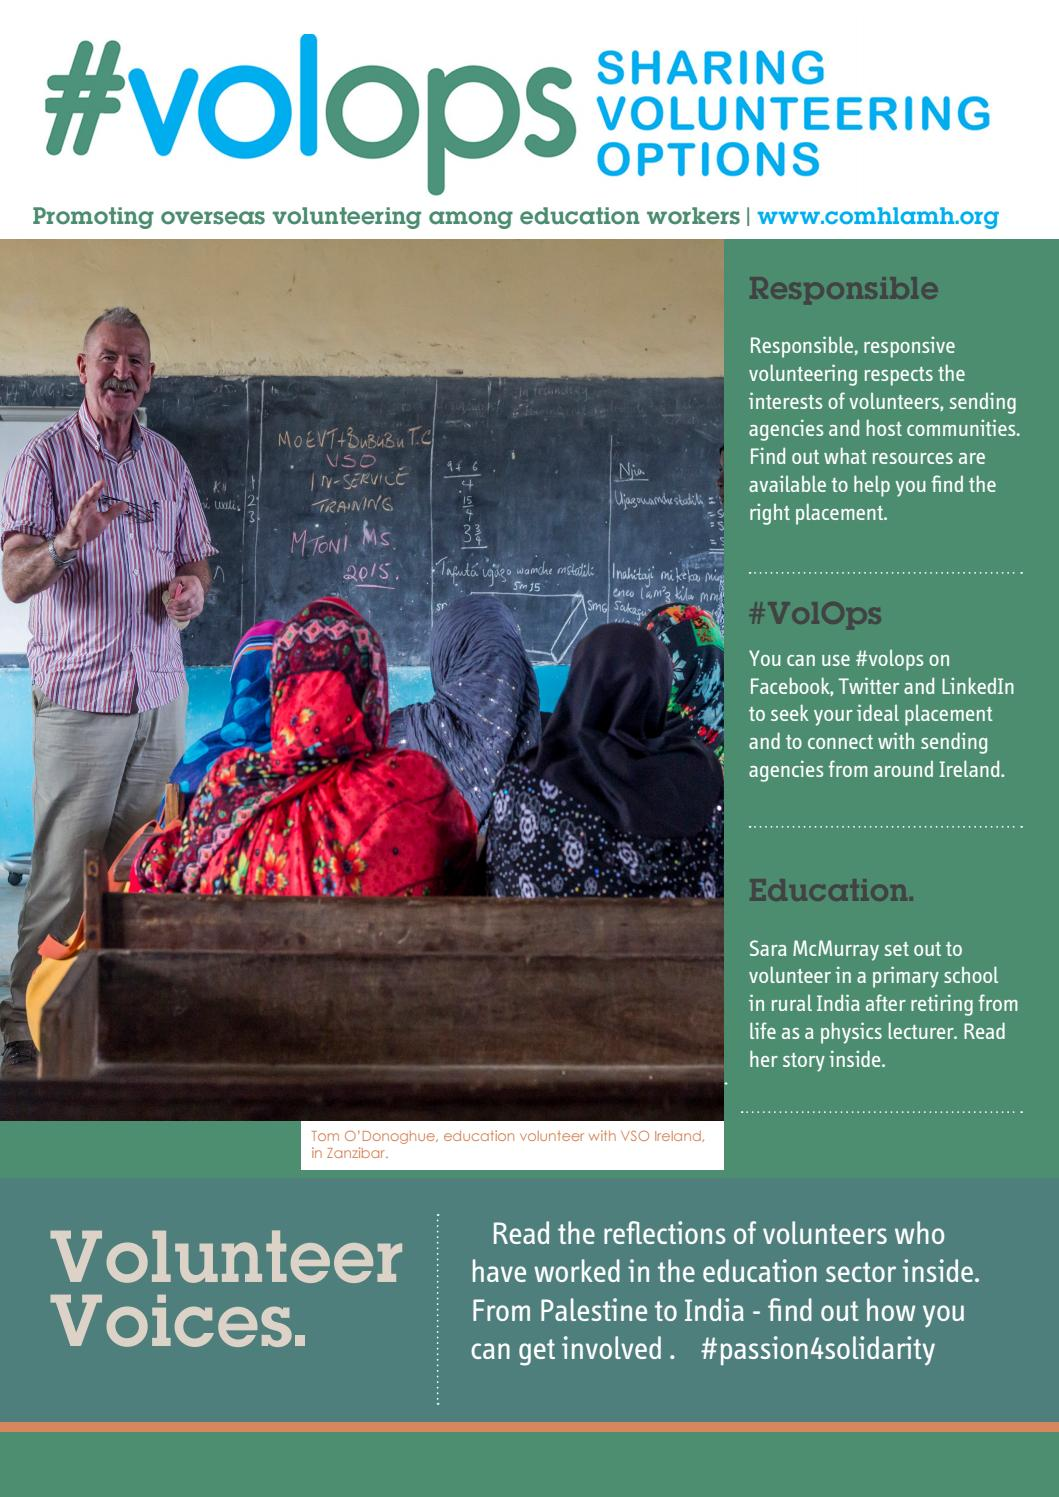 VolOps Education Leaflet by Comhlamh - issuu